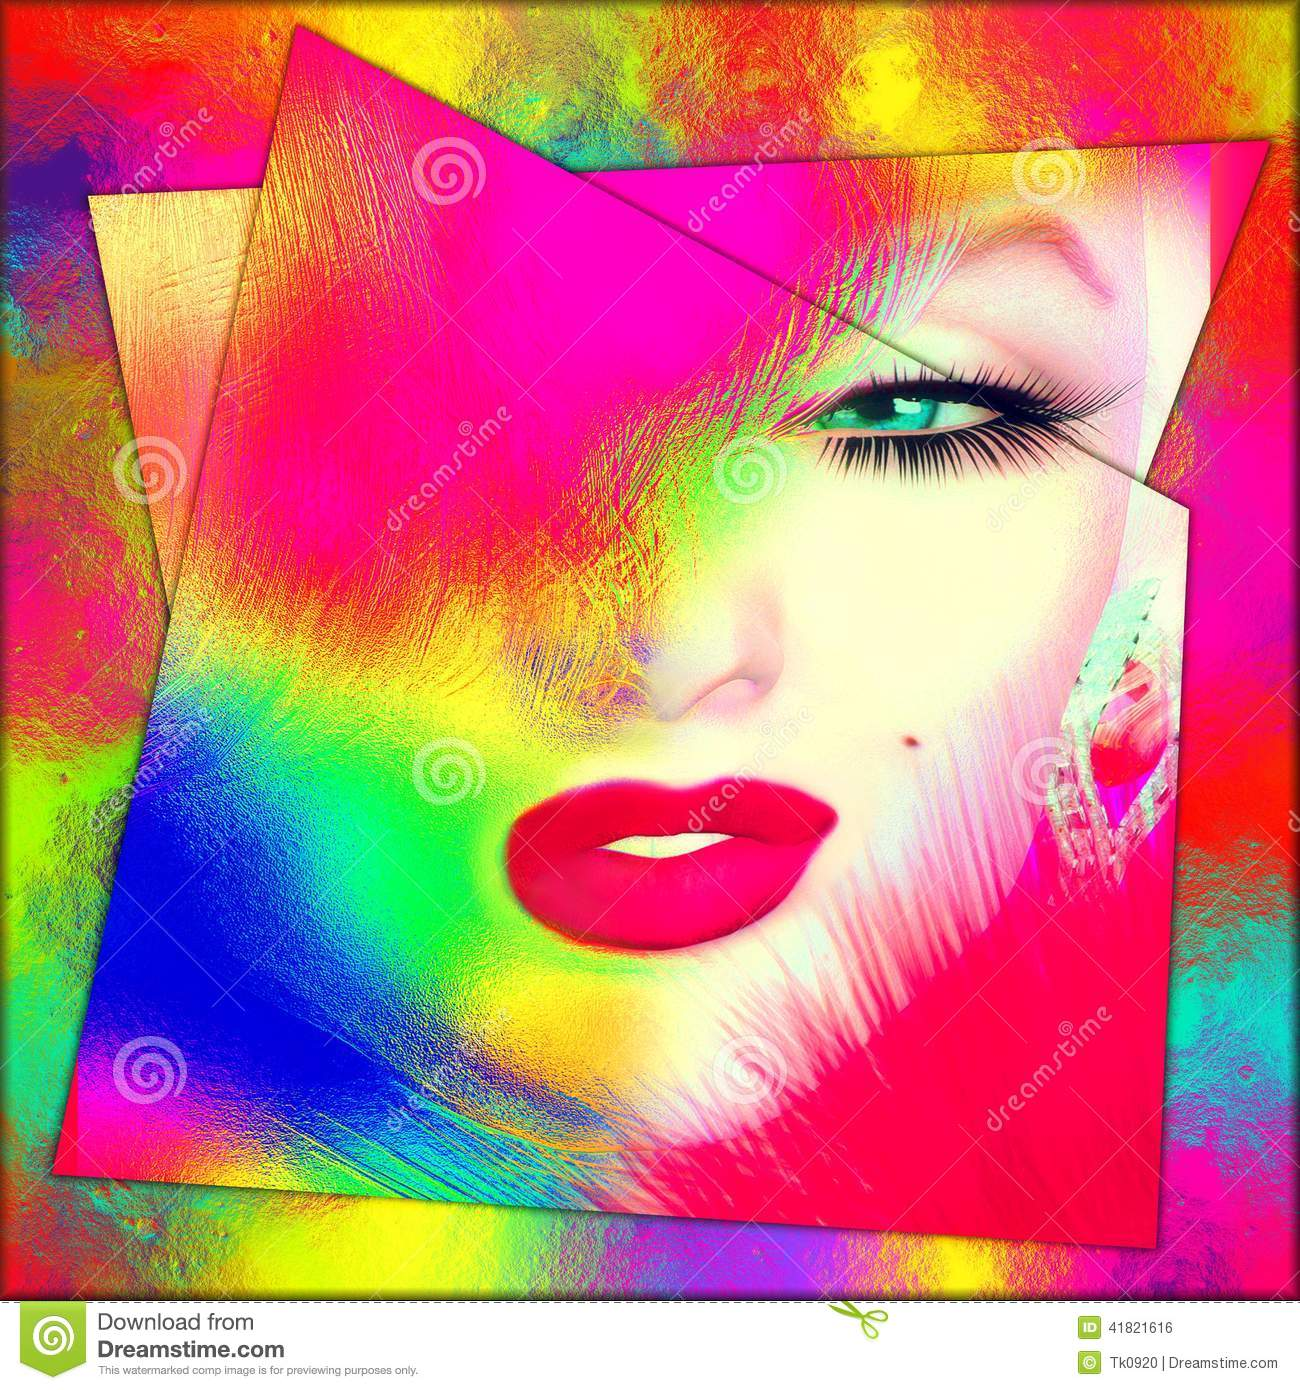 Blonde Bomb Shell, Abstract Colorful Close Up Face. Stock